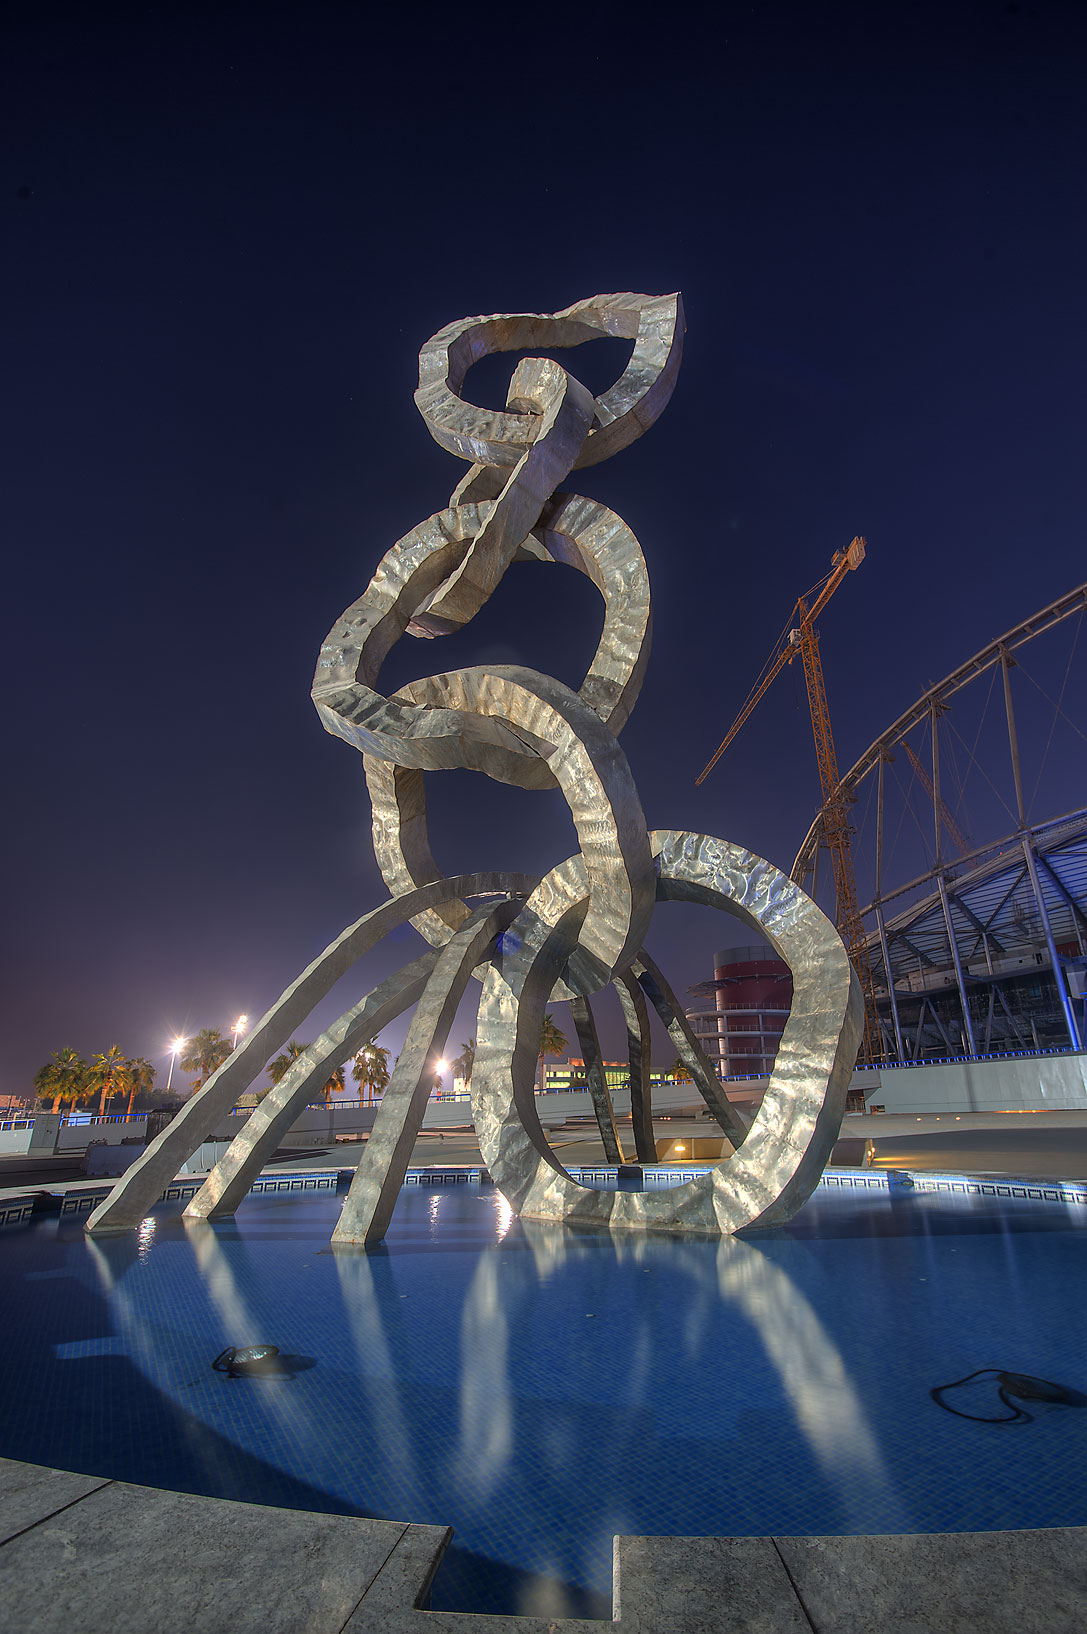 Olympic rings sculpture in Aspire Zone. Doha, Qatar